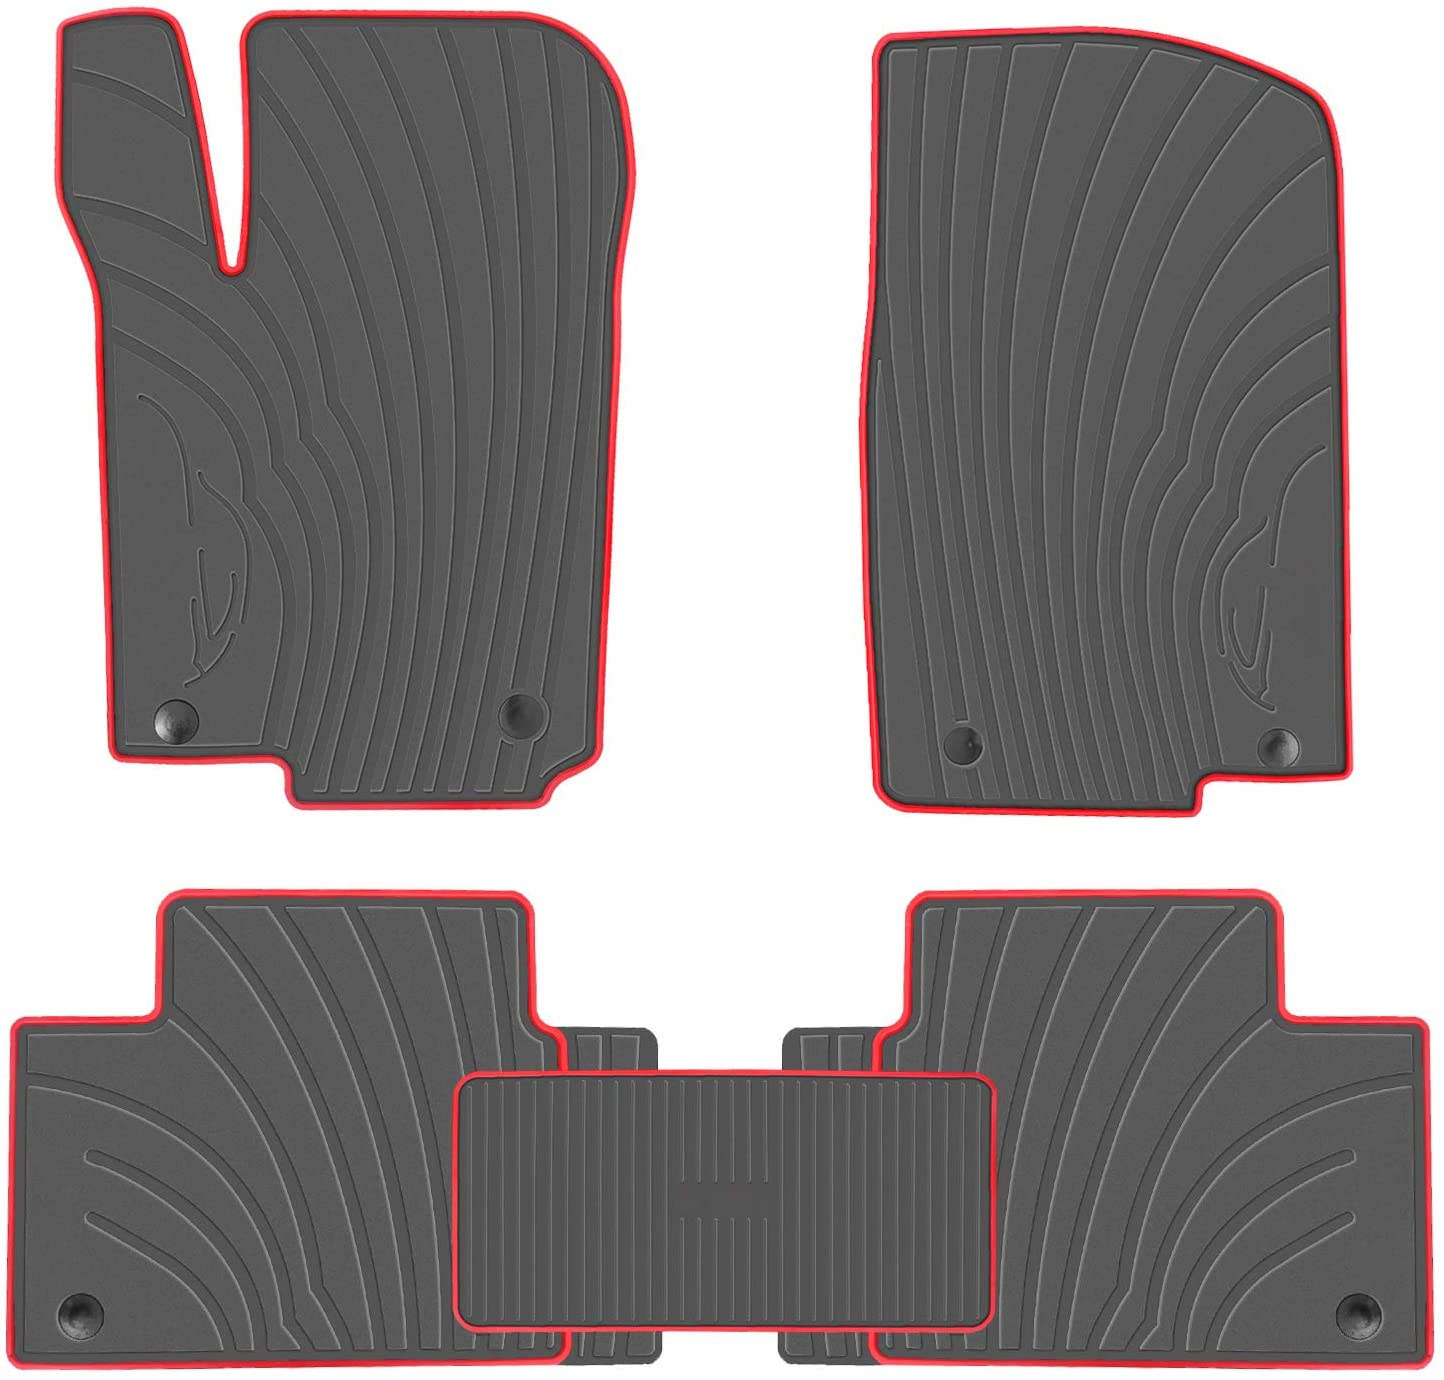 San Auto Car Floor Mats Fit for 2013-16 Mercedes-Benz GL350/GL450, 2016-18 Mercedes-Benz GLE350, 2017-19 Mercedes-Benz GLS450 Black Red Rubber Front & 2nd Seat Auto Floor Liners All Weather Heavy Duty